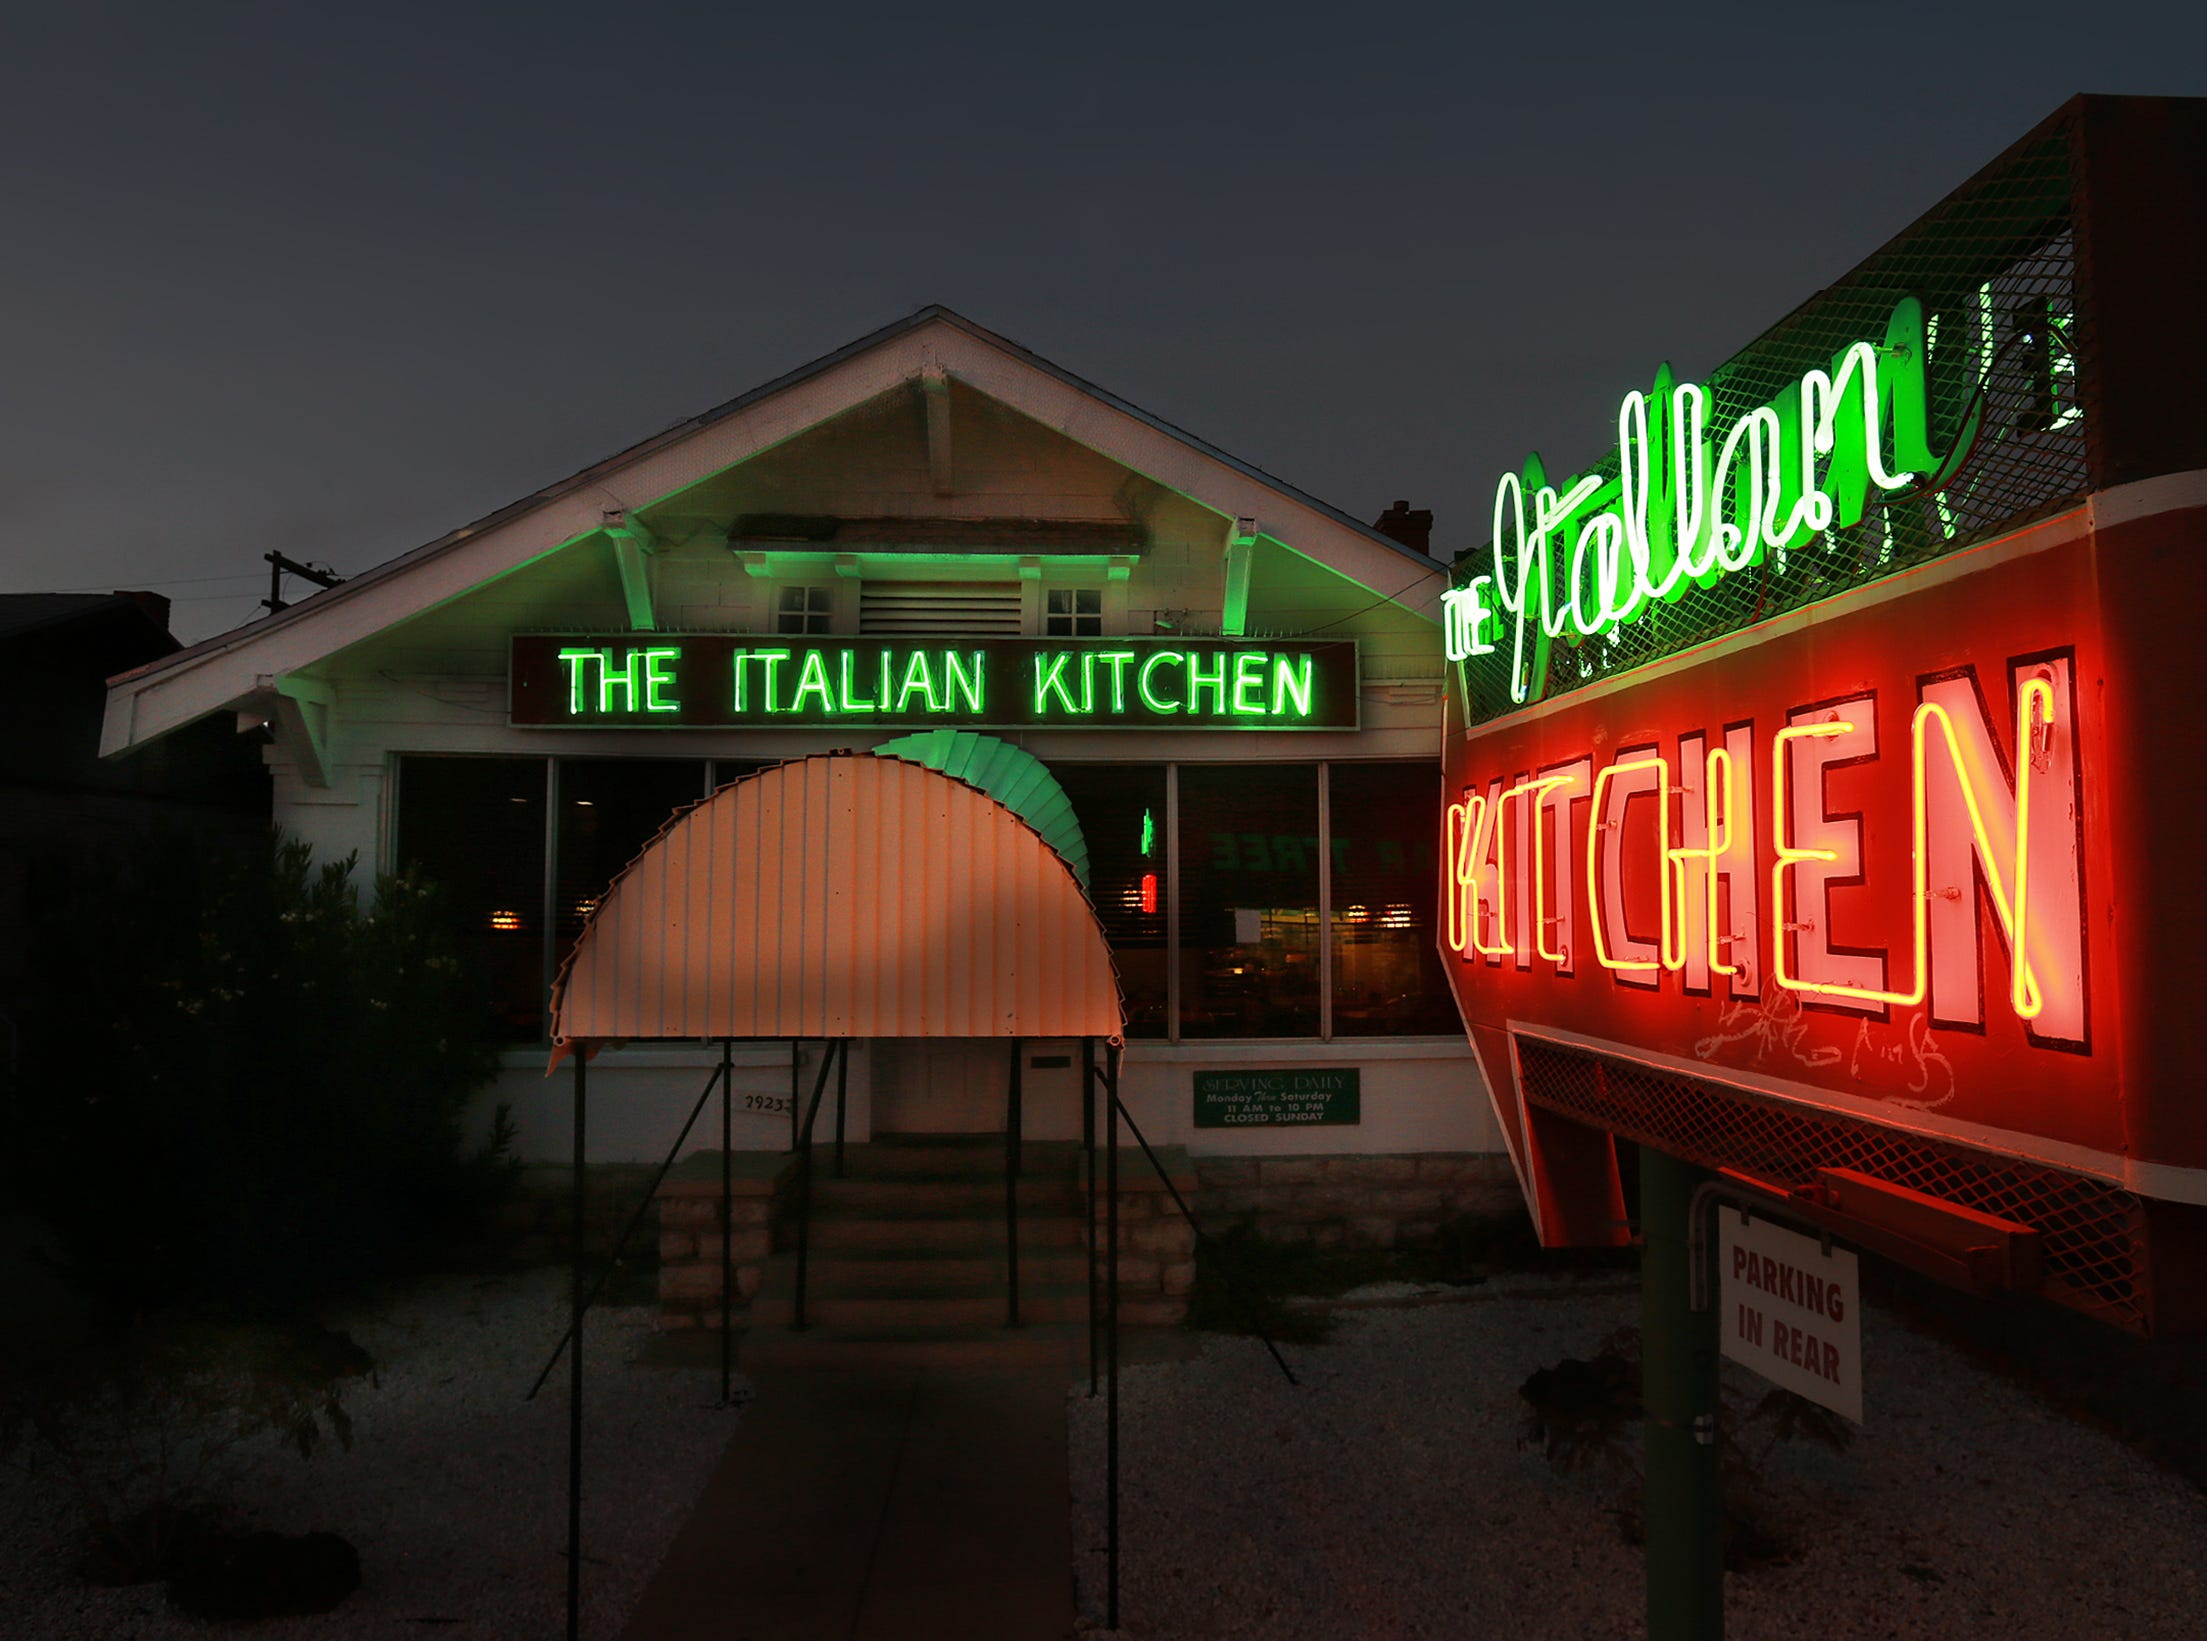 The Italian Kitchen is celebrating its 70th year of business in El Paso.